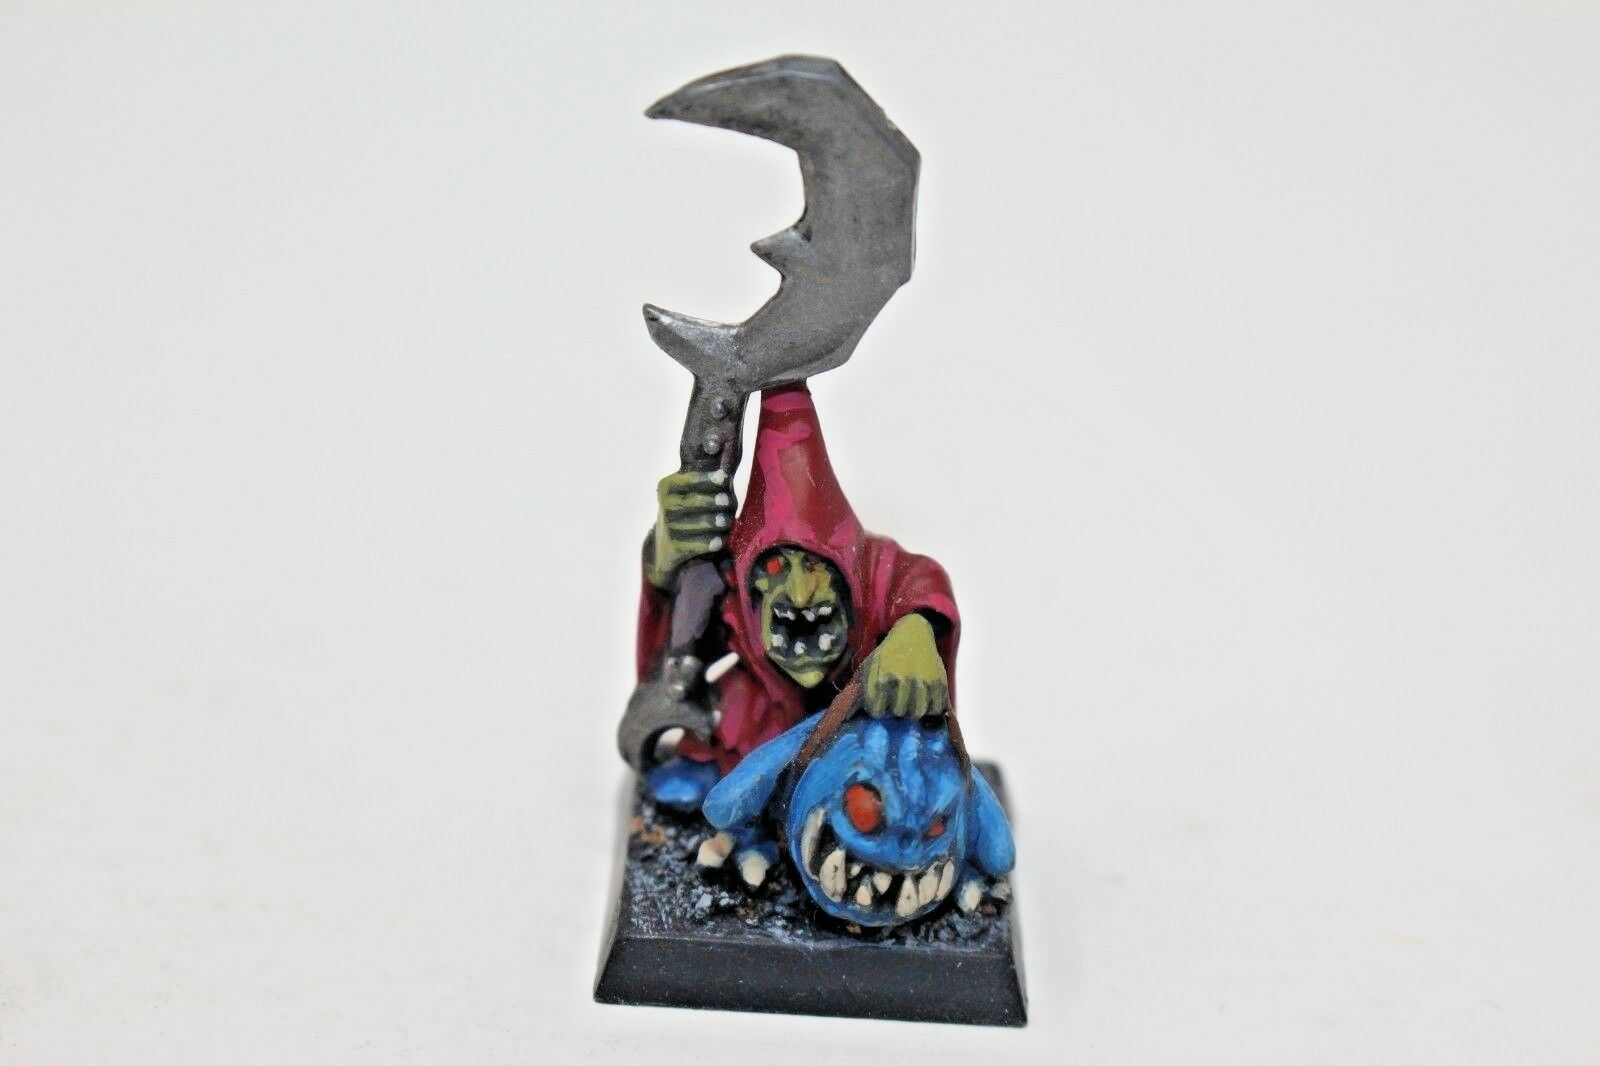 Warhammer Orcs and Goblins Night Goblins Warboss Well Painted - JYS63